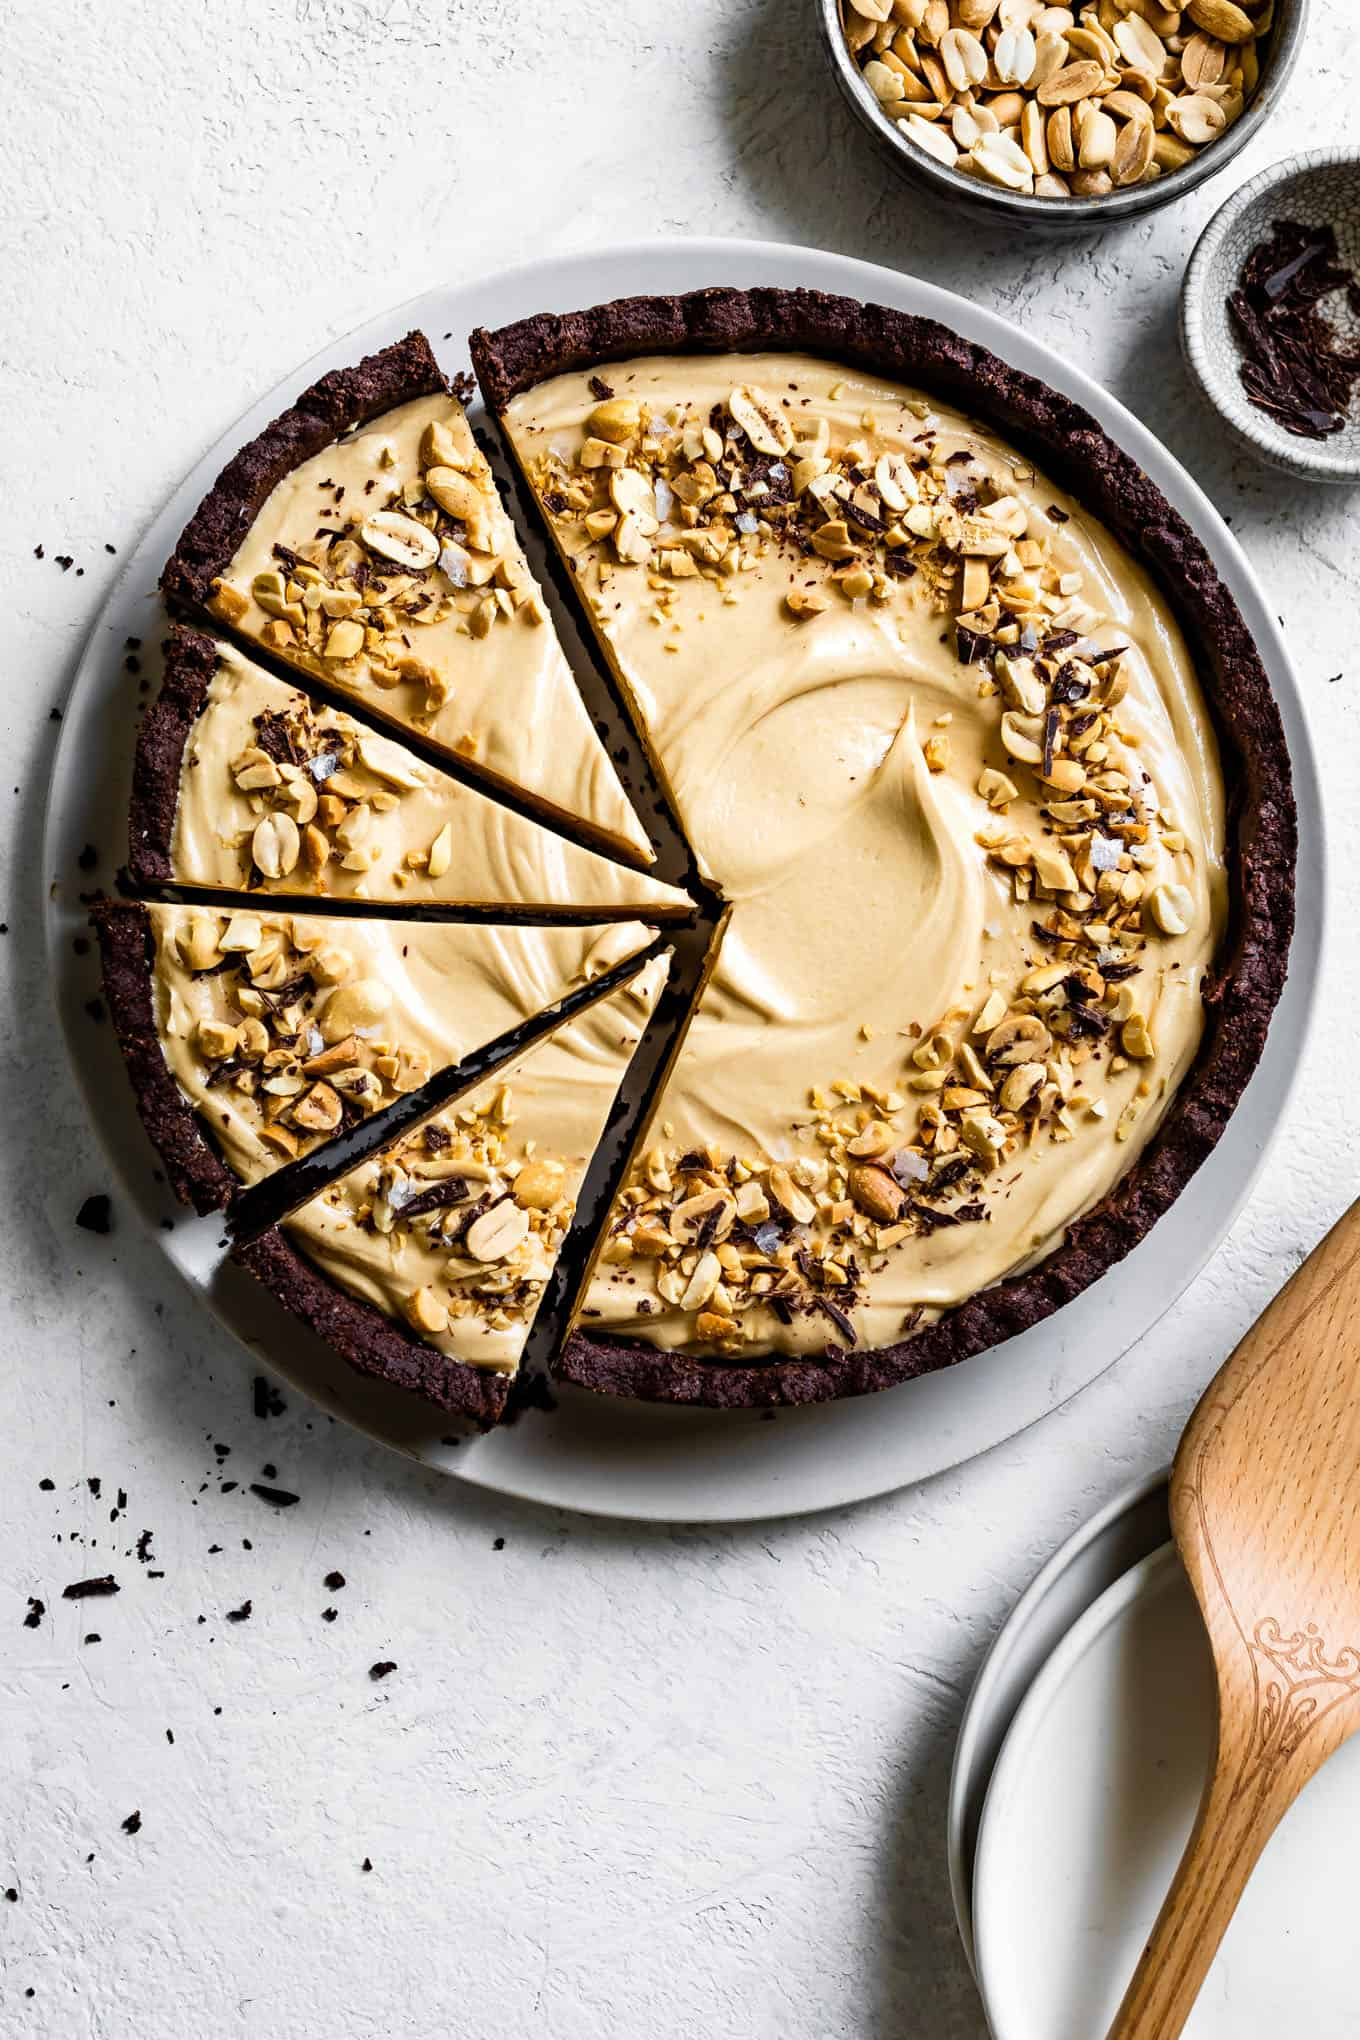 Gluten-Free Chocolate Peanut Butter Pie